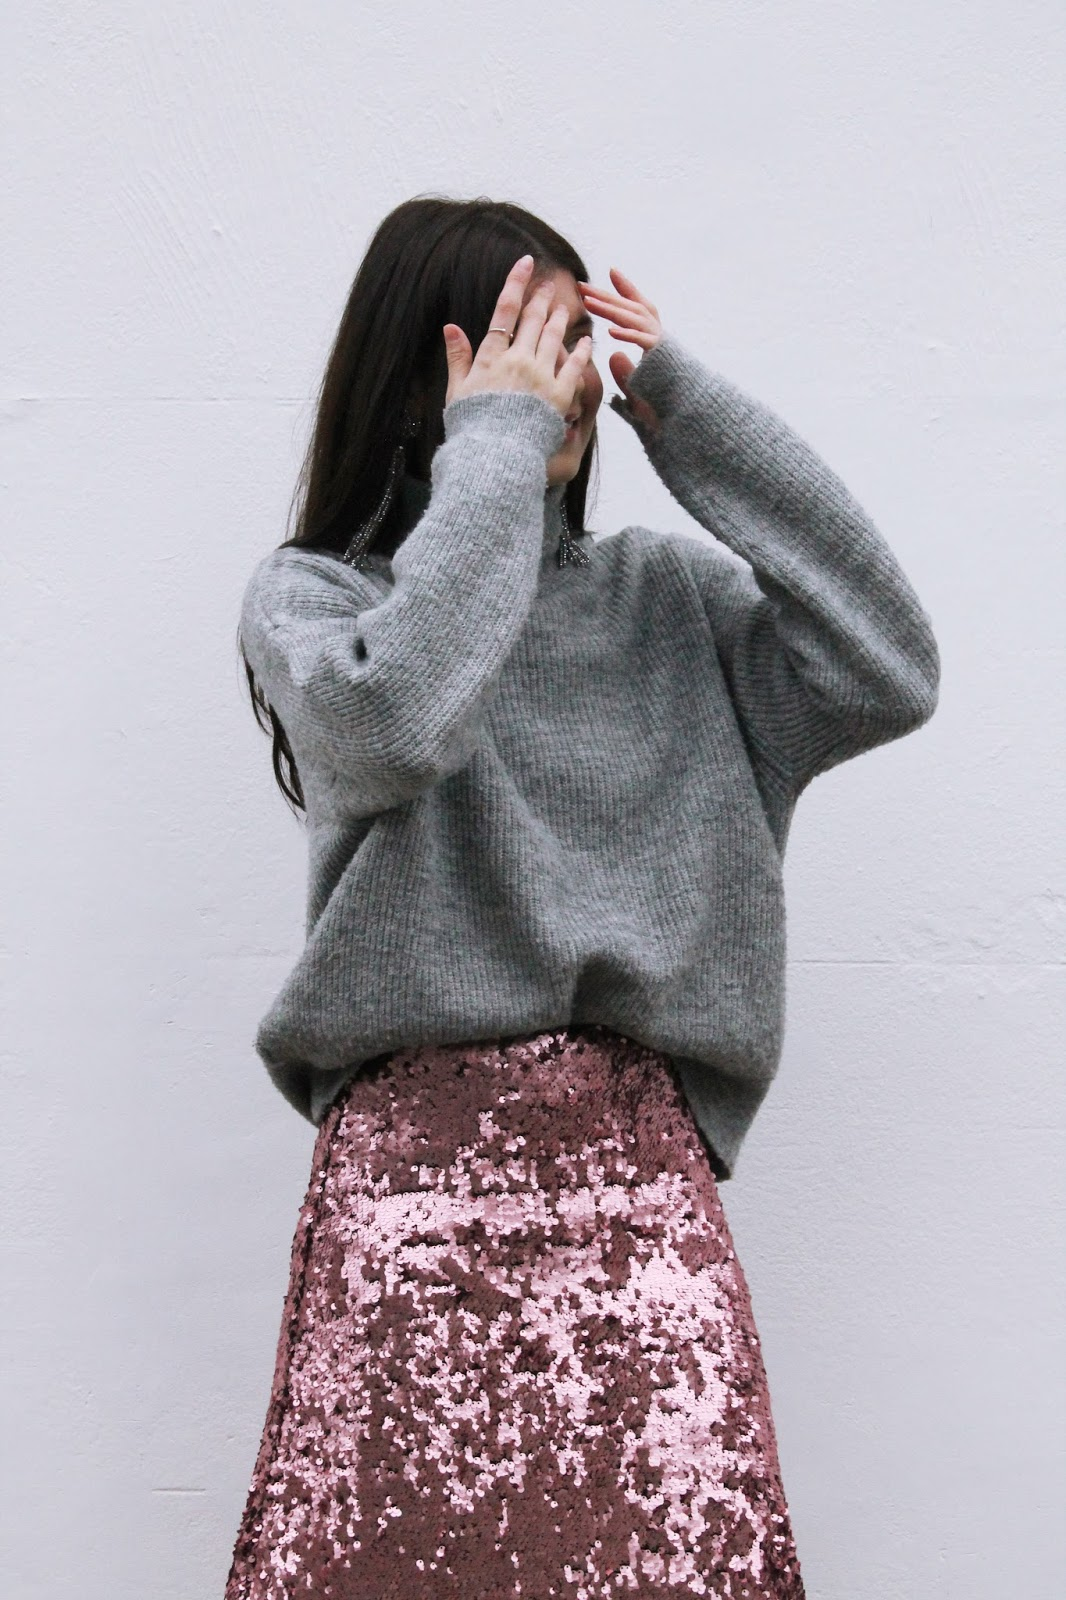 fashion blogger, london blogger, microinfluencer, sequin skirt, hm pink sequin skirt, jumper and sequin skirt, holiday outfit, christmas outfit